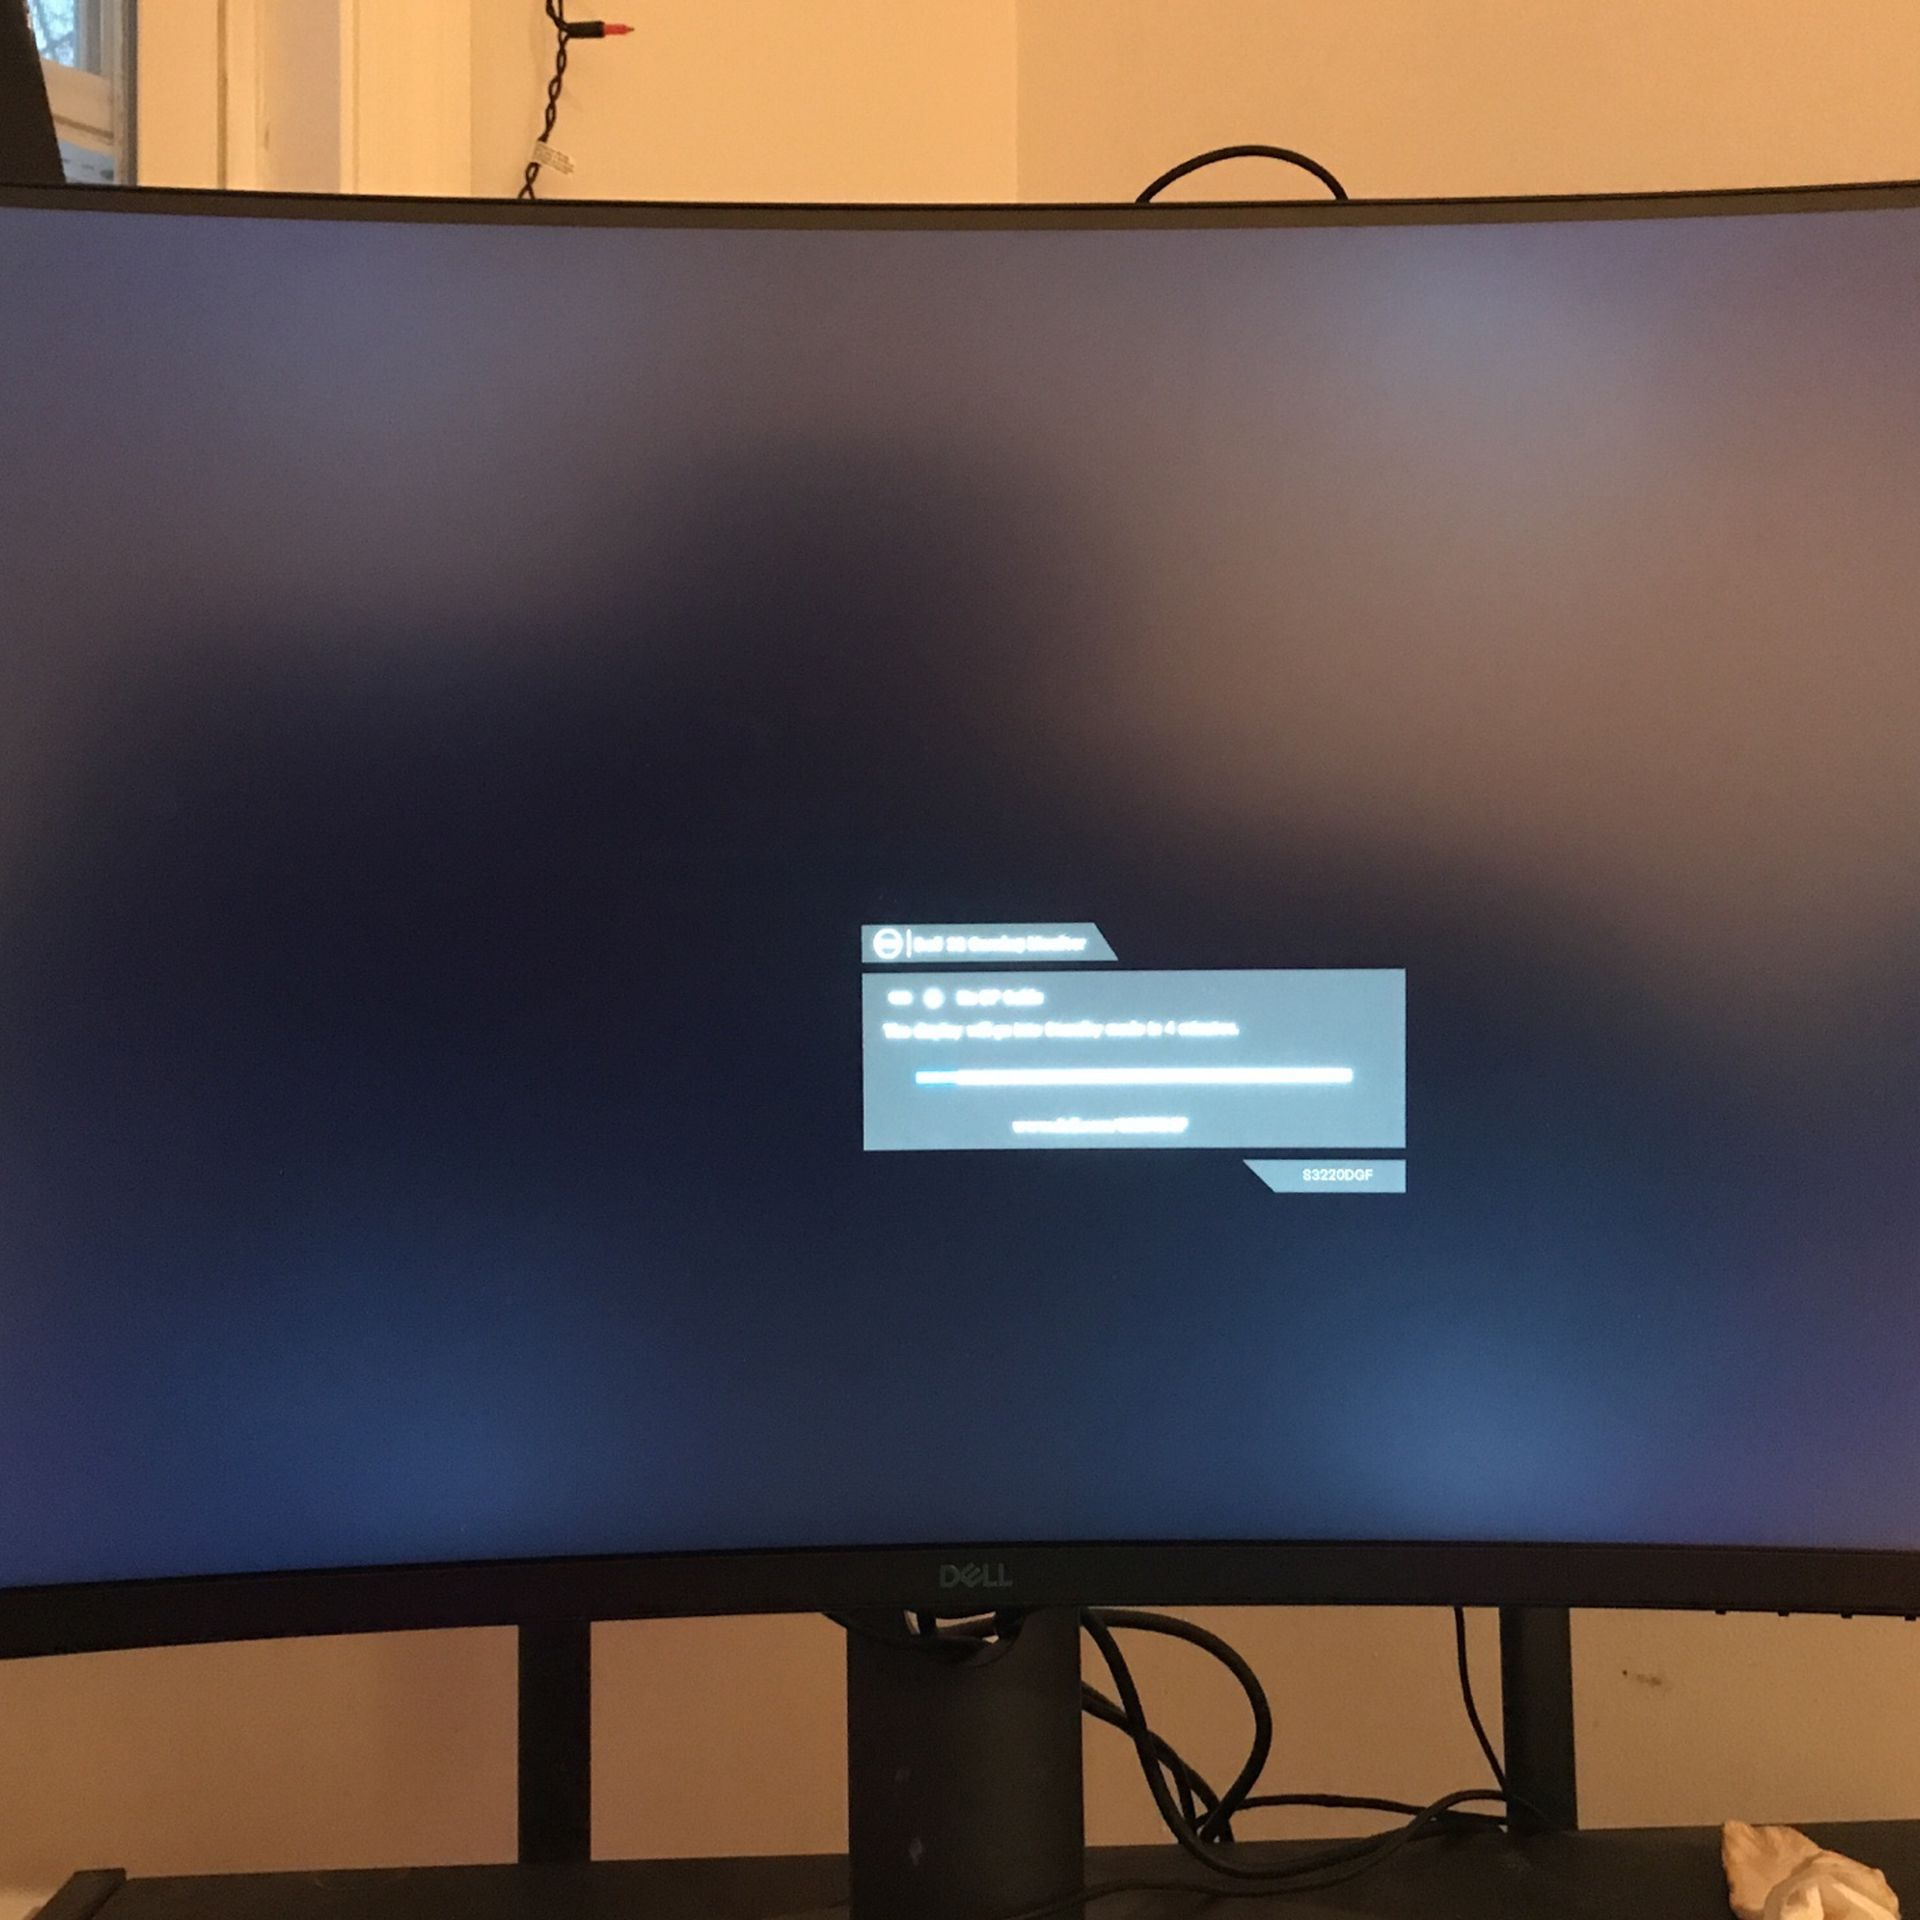 Dell 4K Curved Gaming Monitor And Keyboard